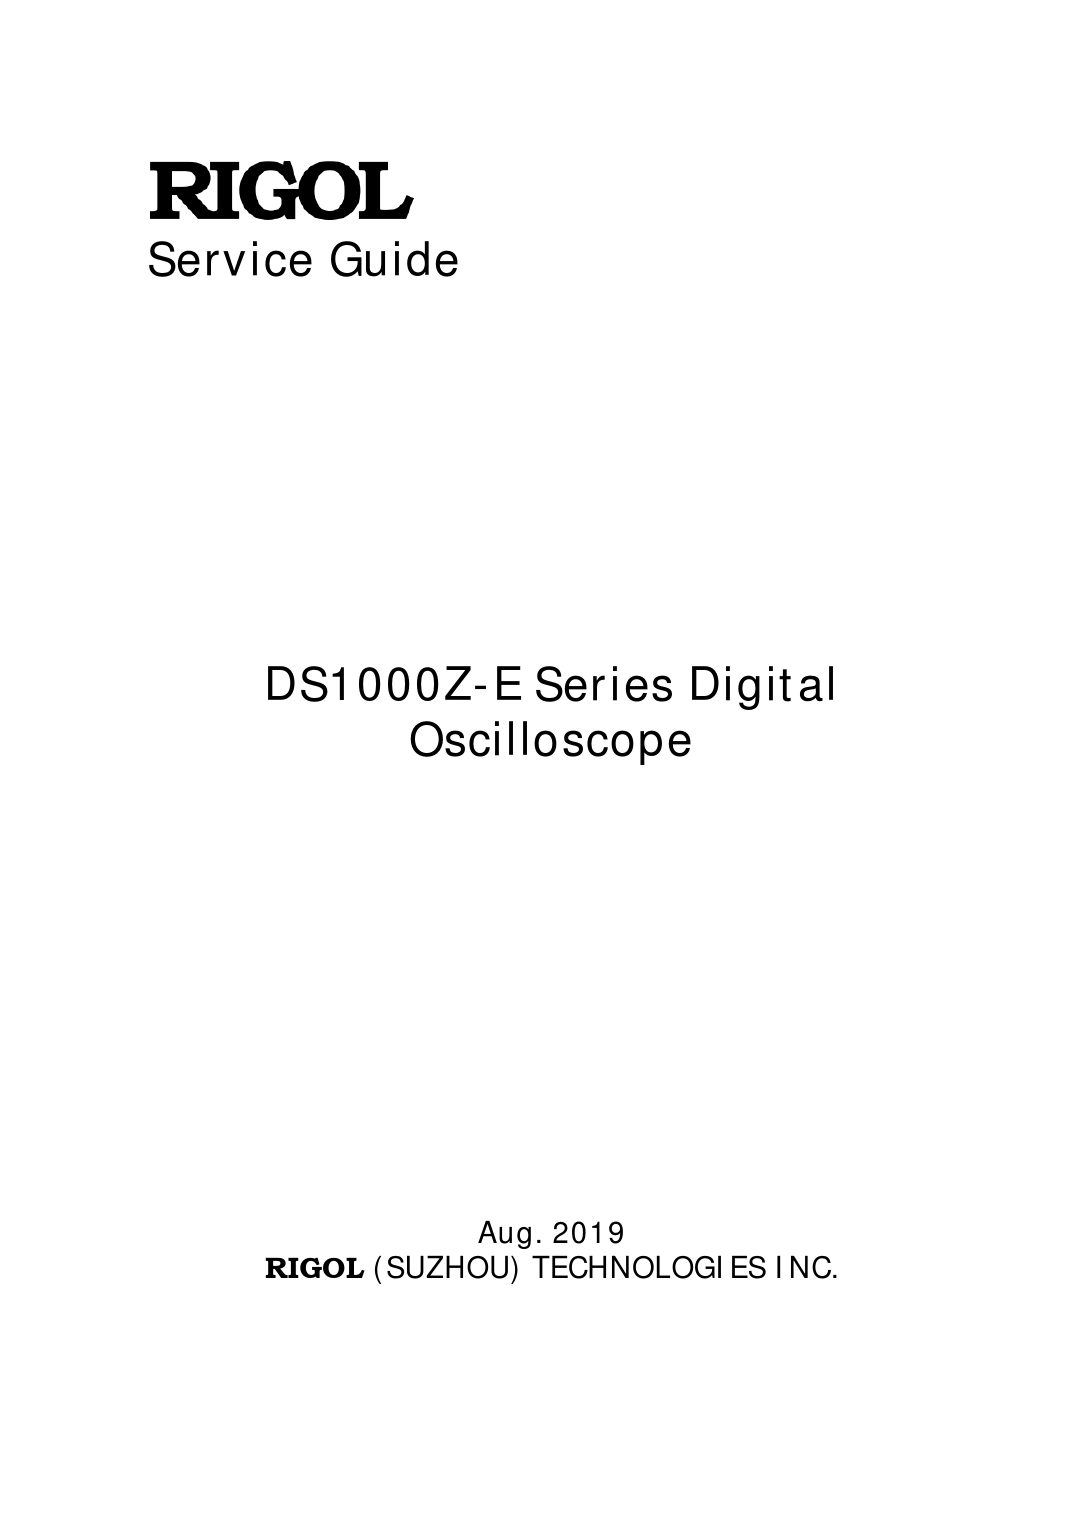 Service Guide DS1000Z-E Series Rigol